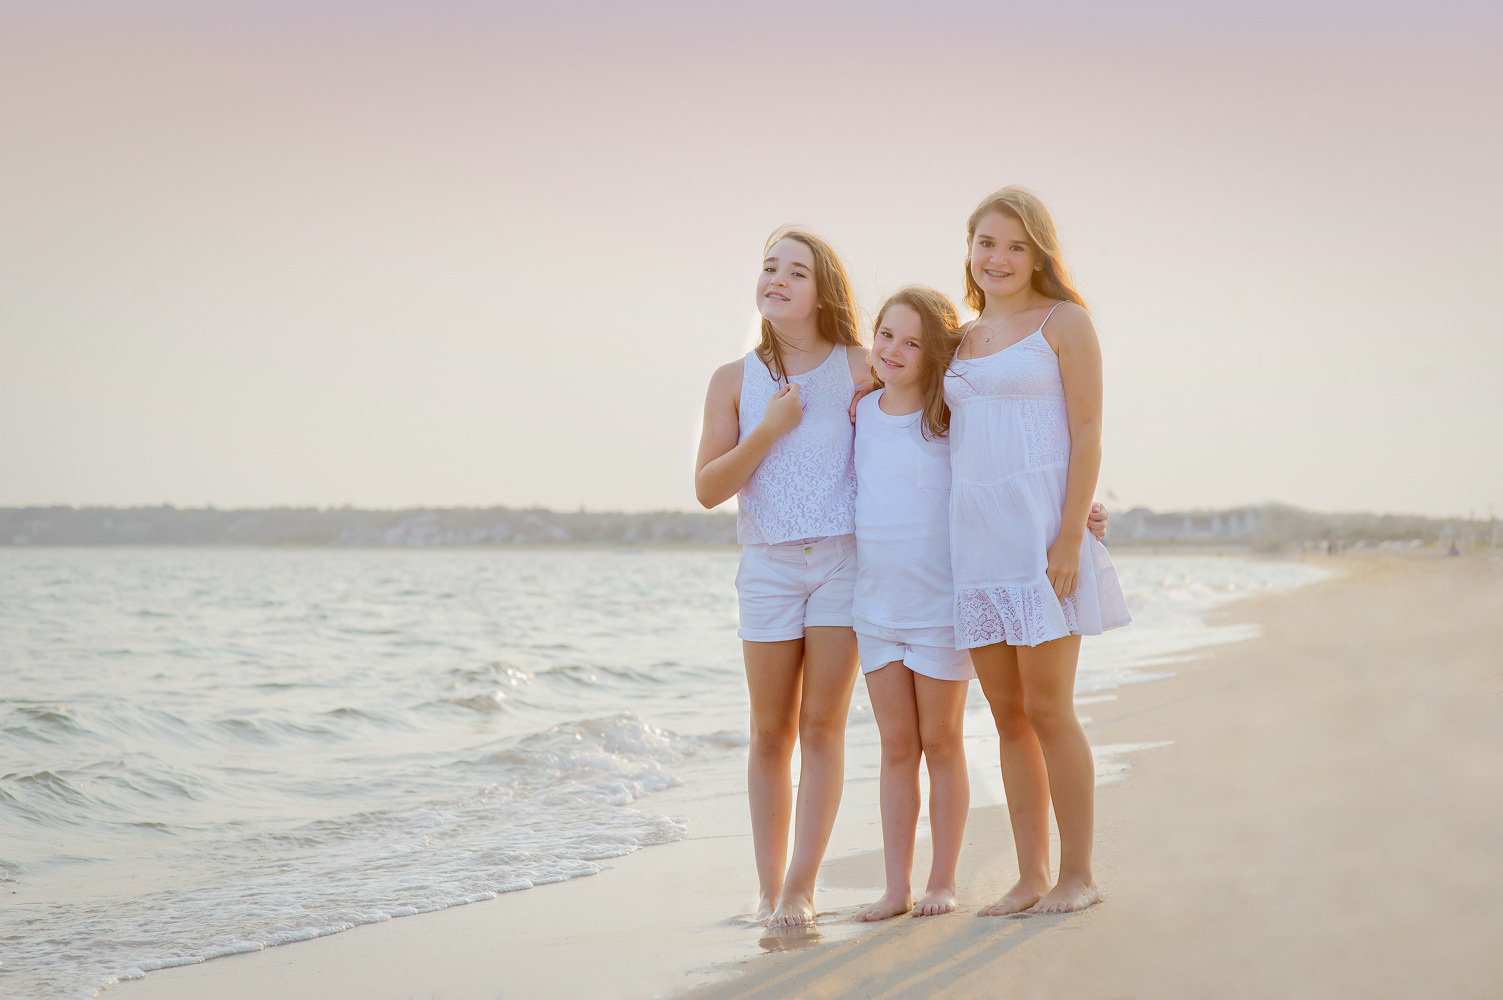 Three Beautiful Sisters standing on the beach and gazing at the